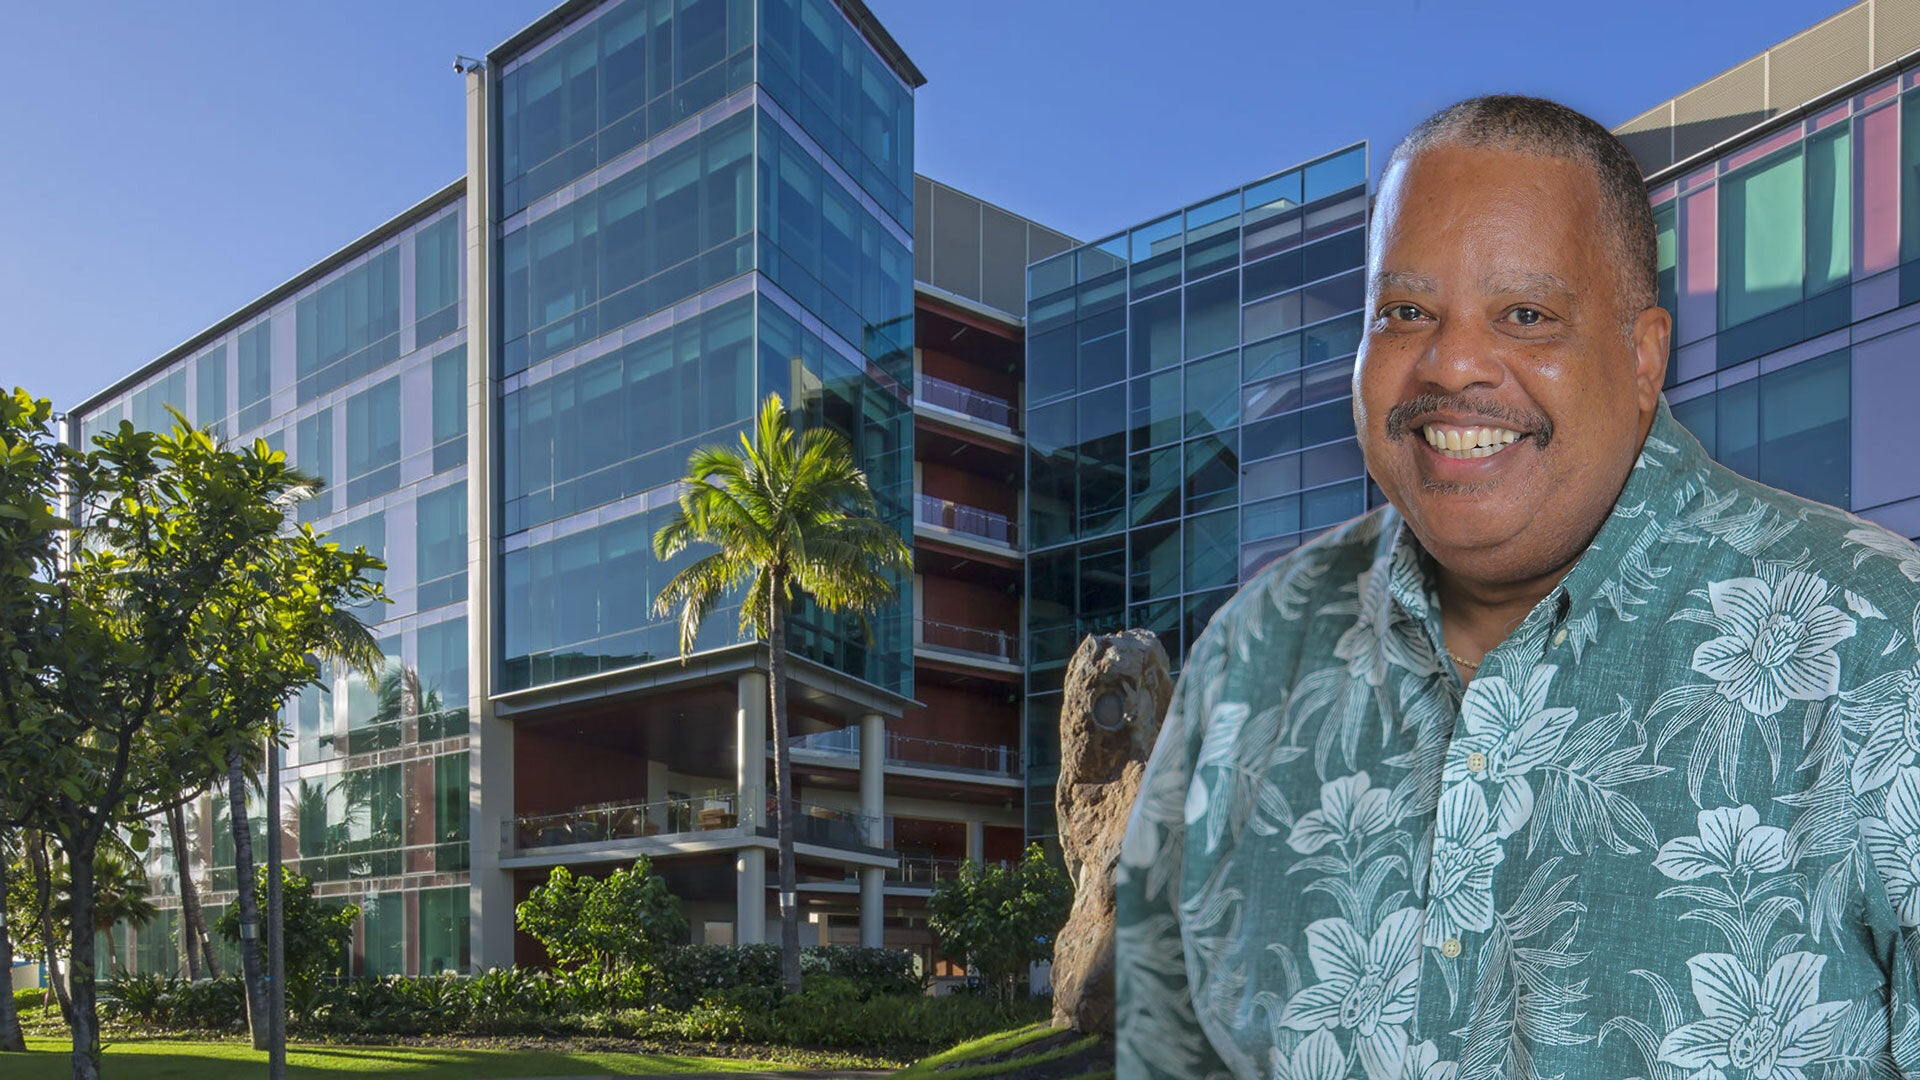 photo of Kevin Cassel in front of the University of Hawaii Cancer Center building